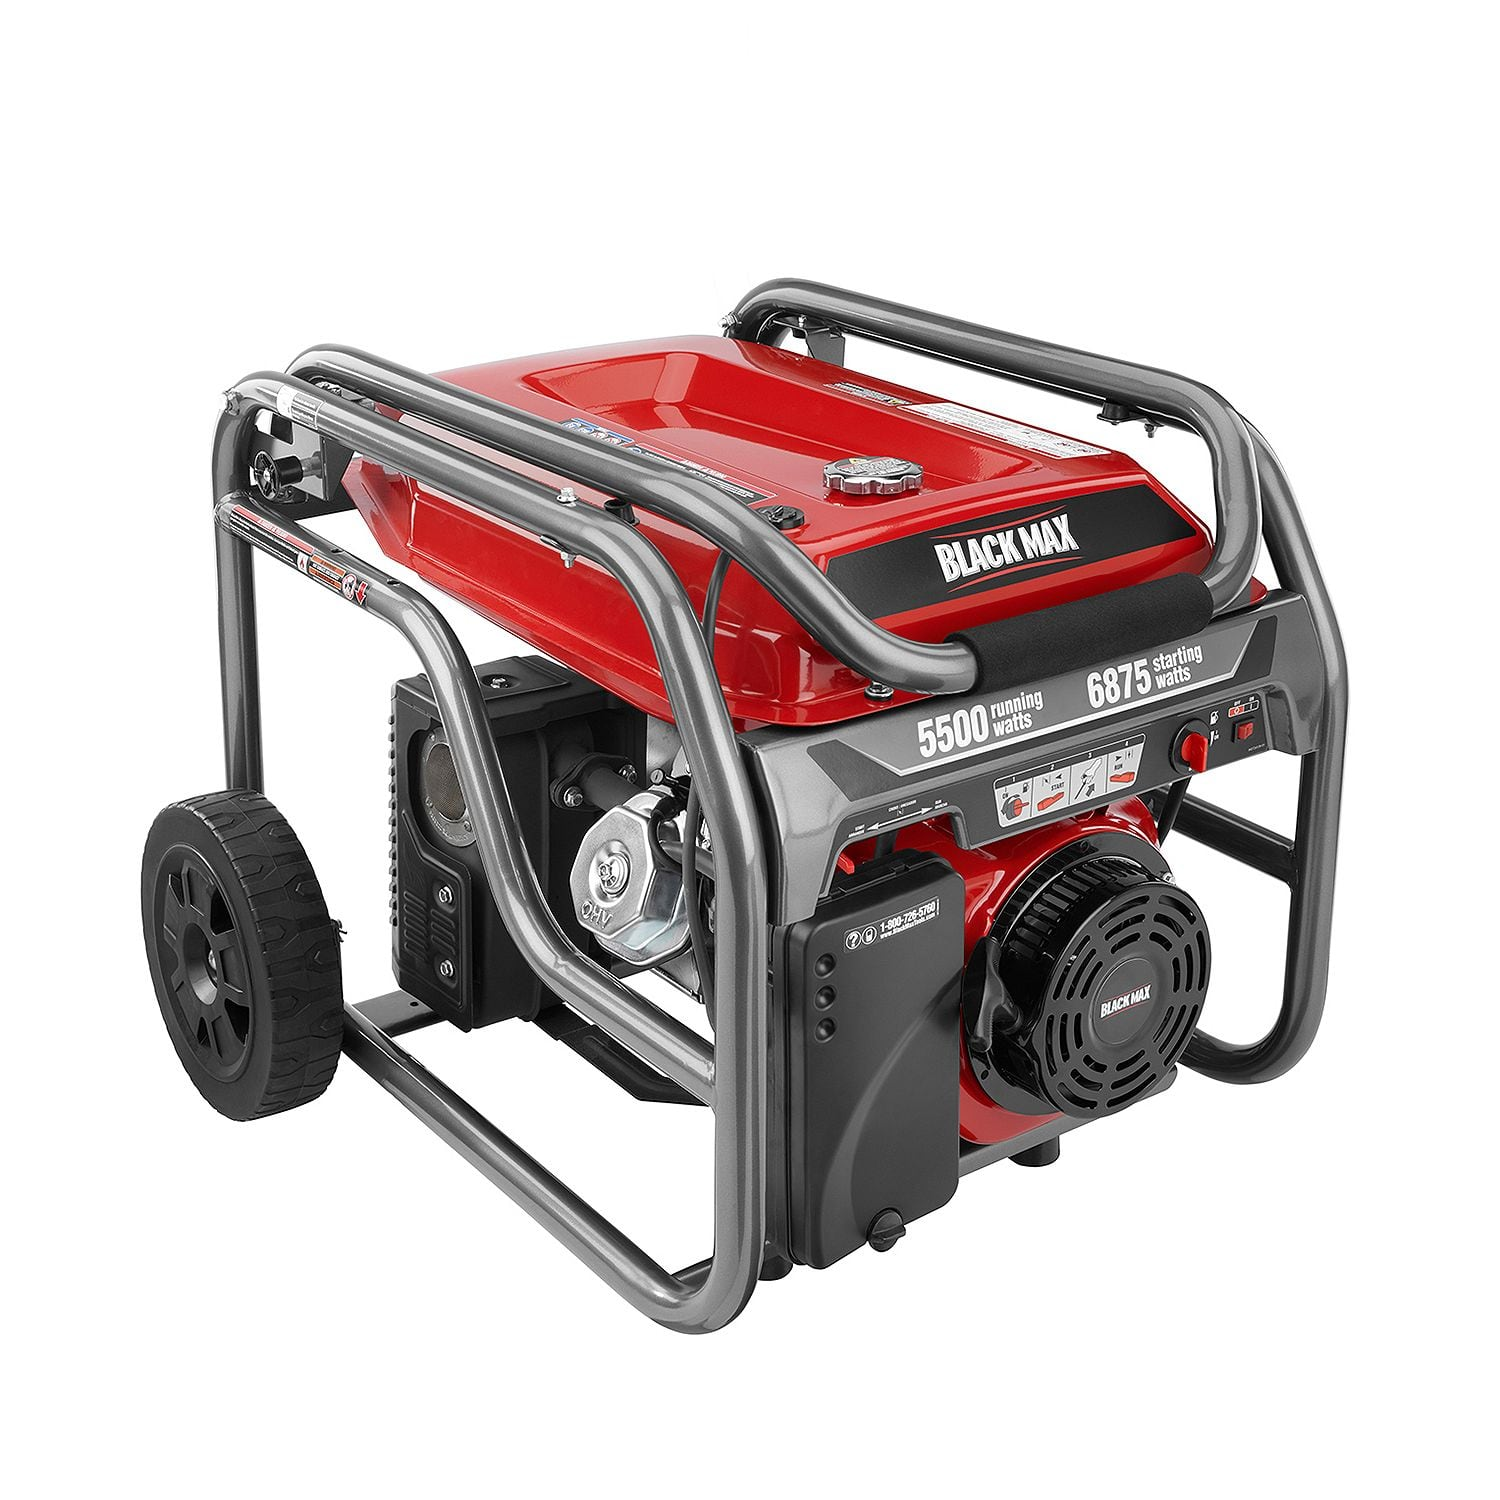 Black Max 5,500 Watt Portable Gas Generator $399 with Free Shipping